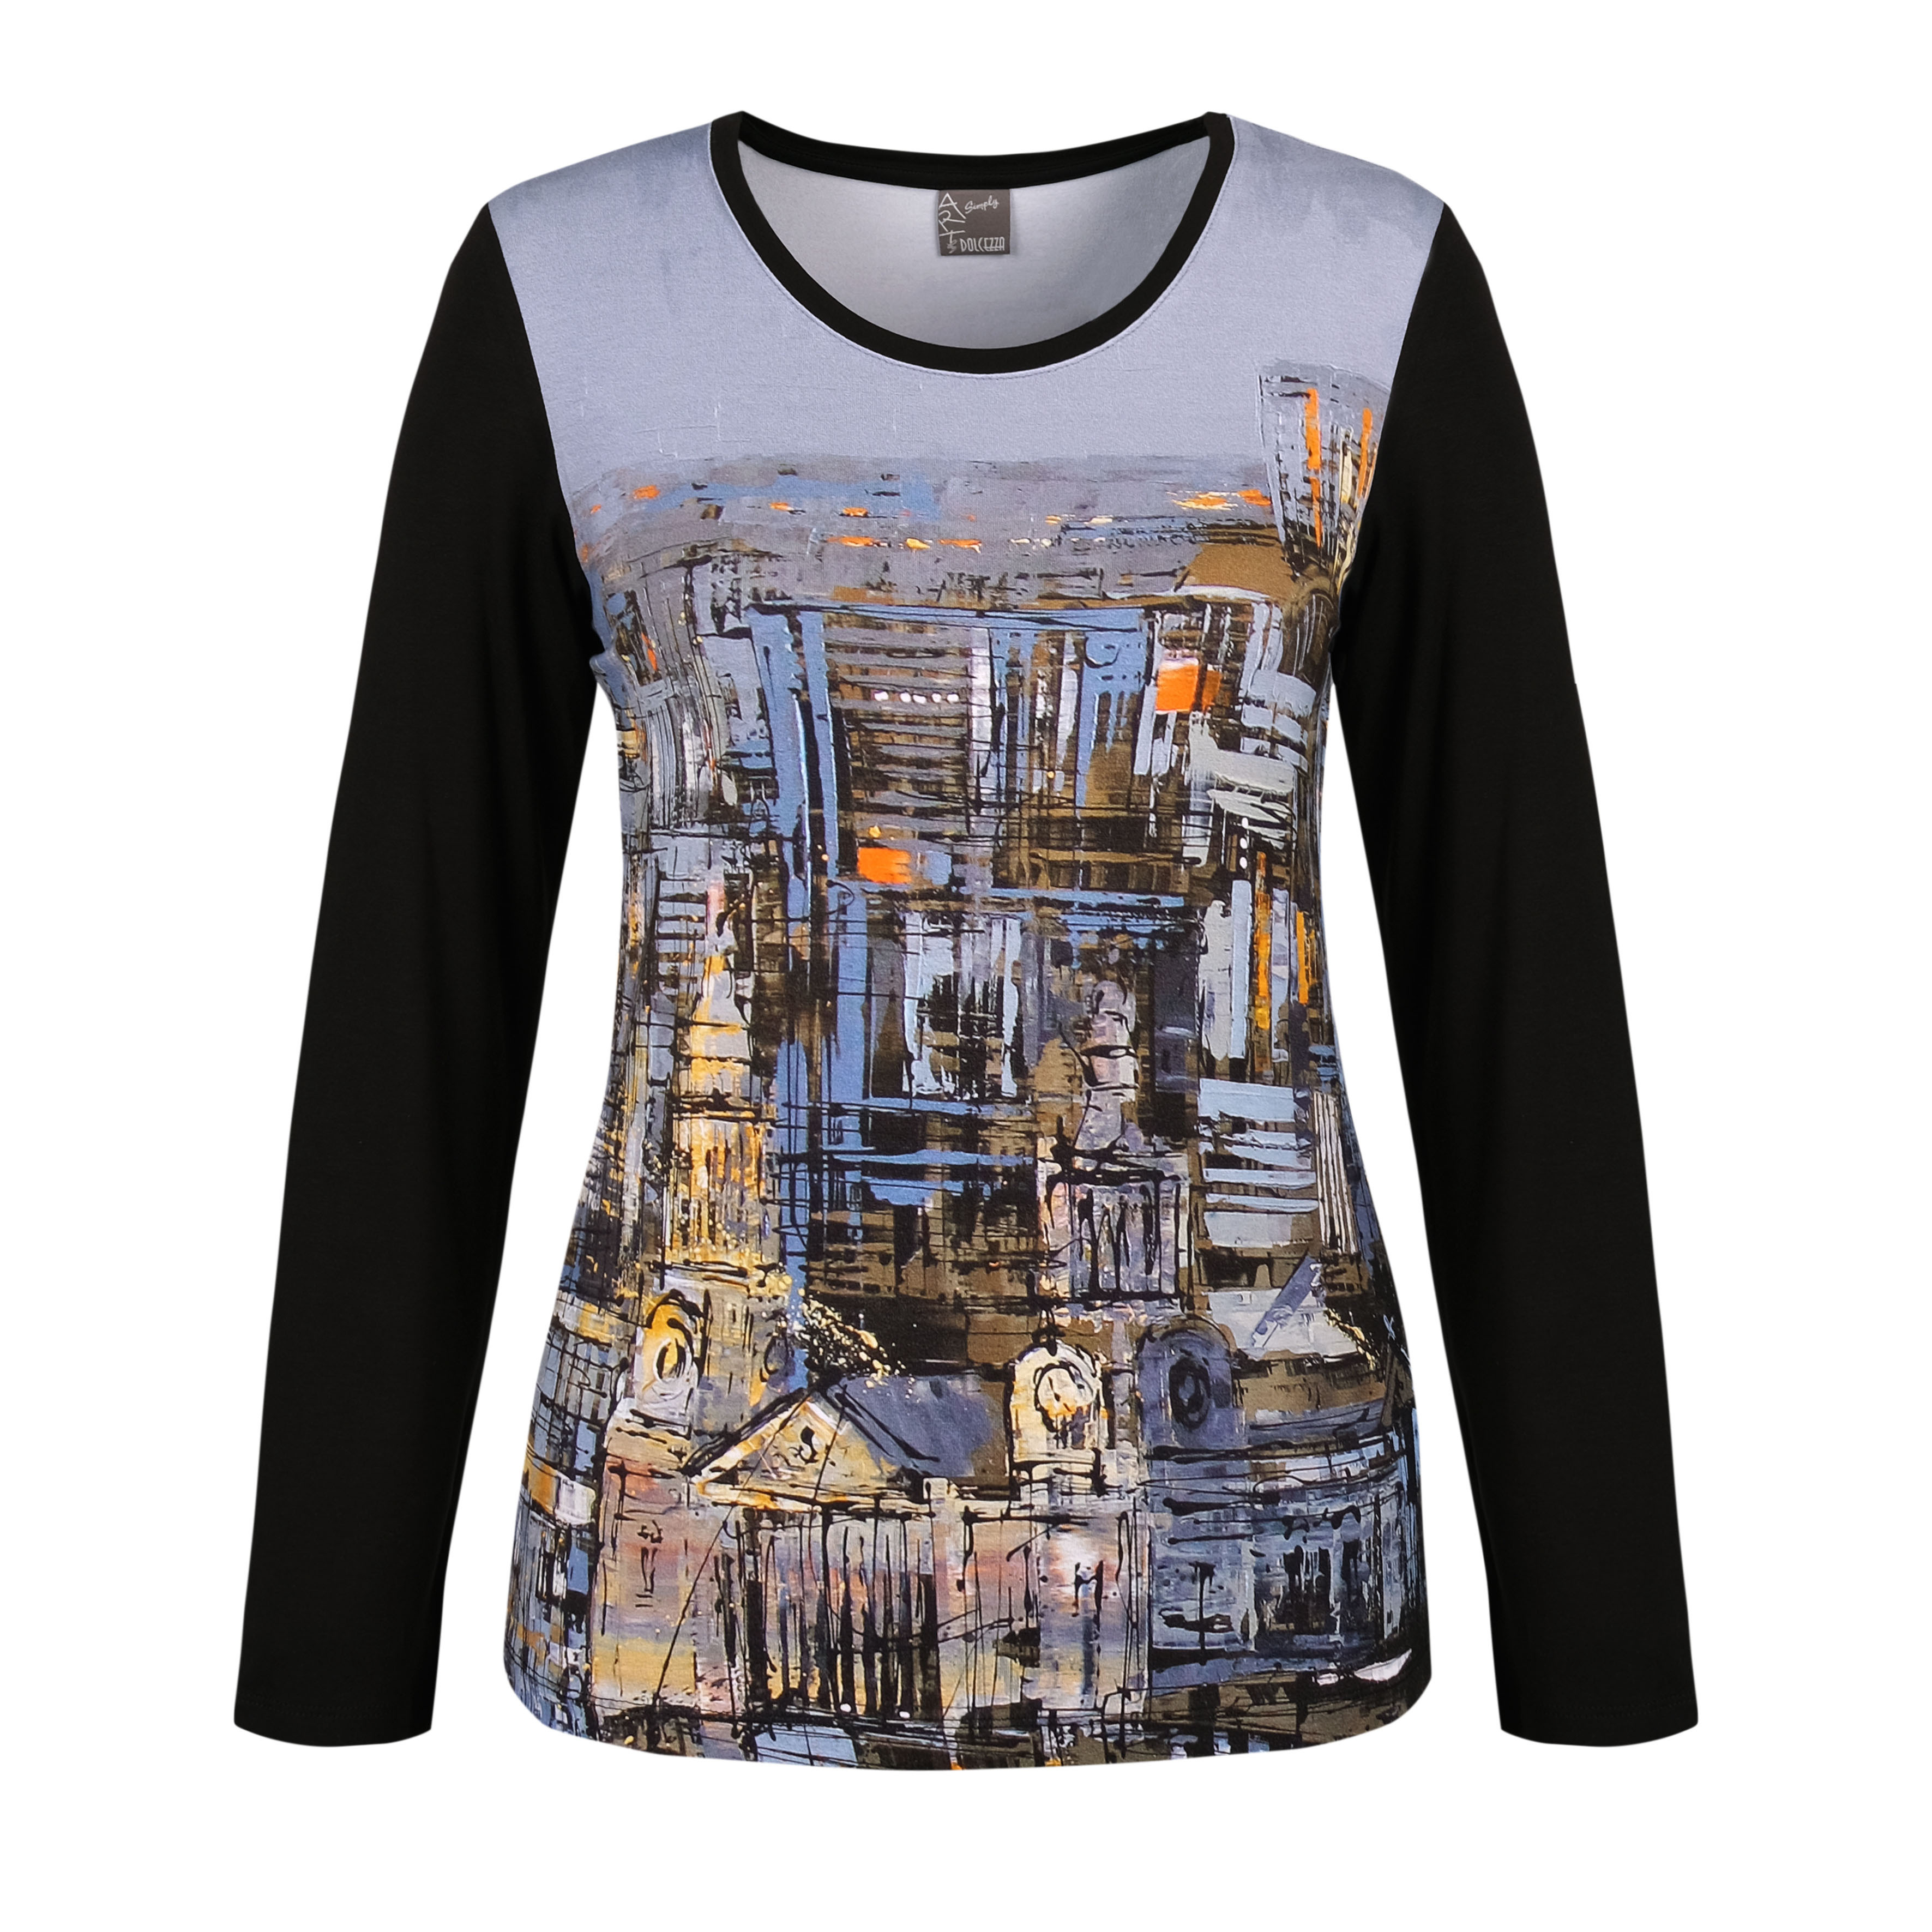 Simply Art Dolcezza: St. Paul's Sundown T-Shirt (1 Available at Special price!) Dolcezza_SimplyArt_70660